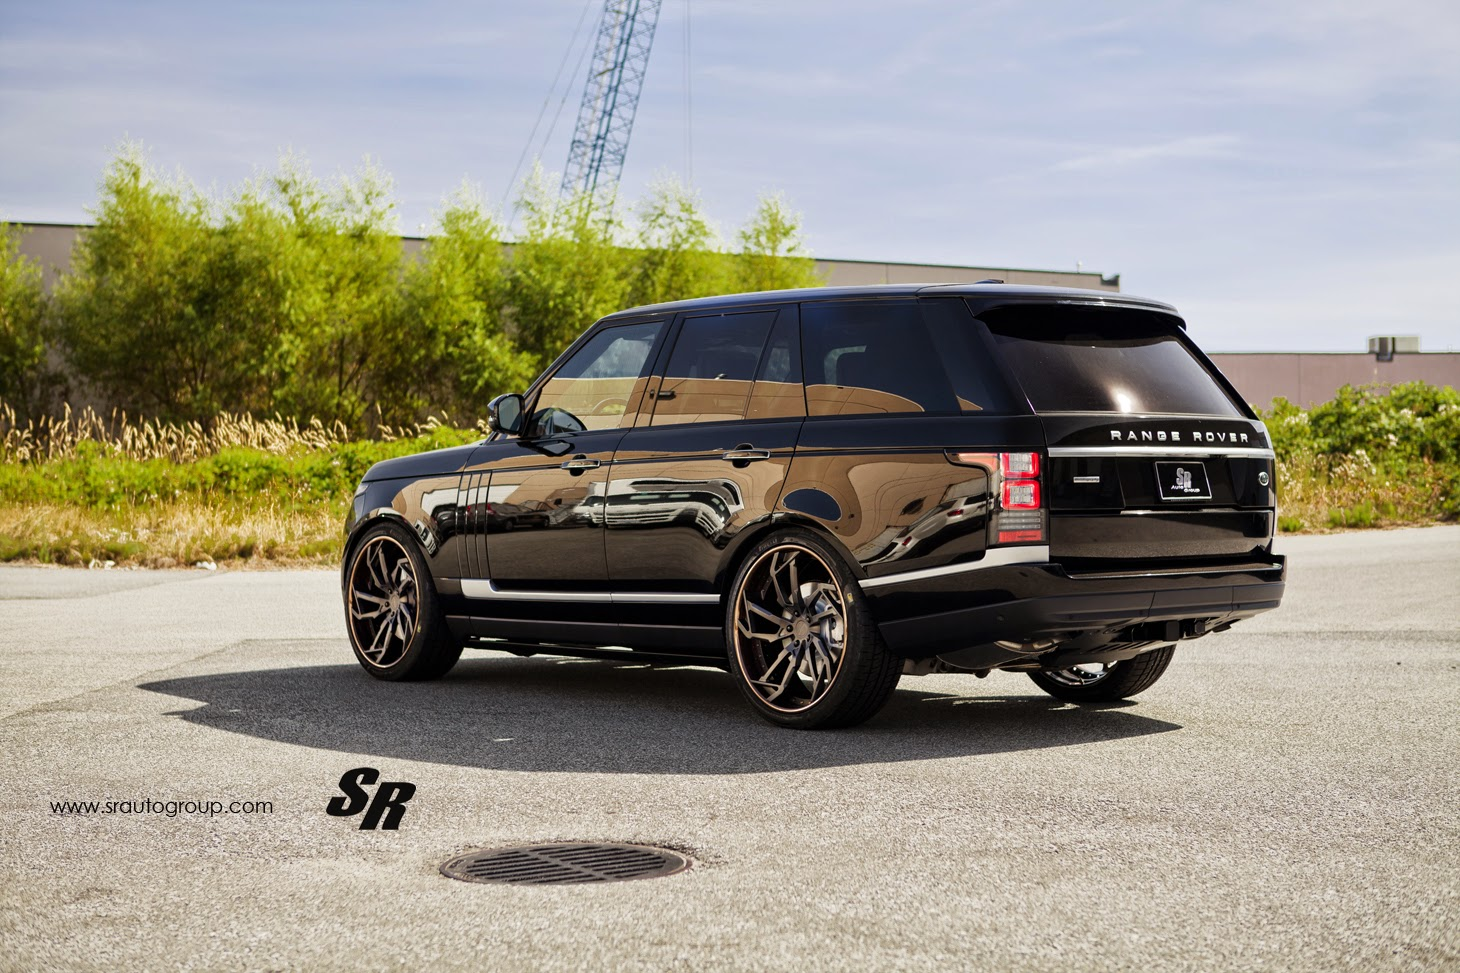 Range Rover Autobiography Gets Some Big New Pur Wheels